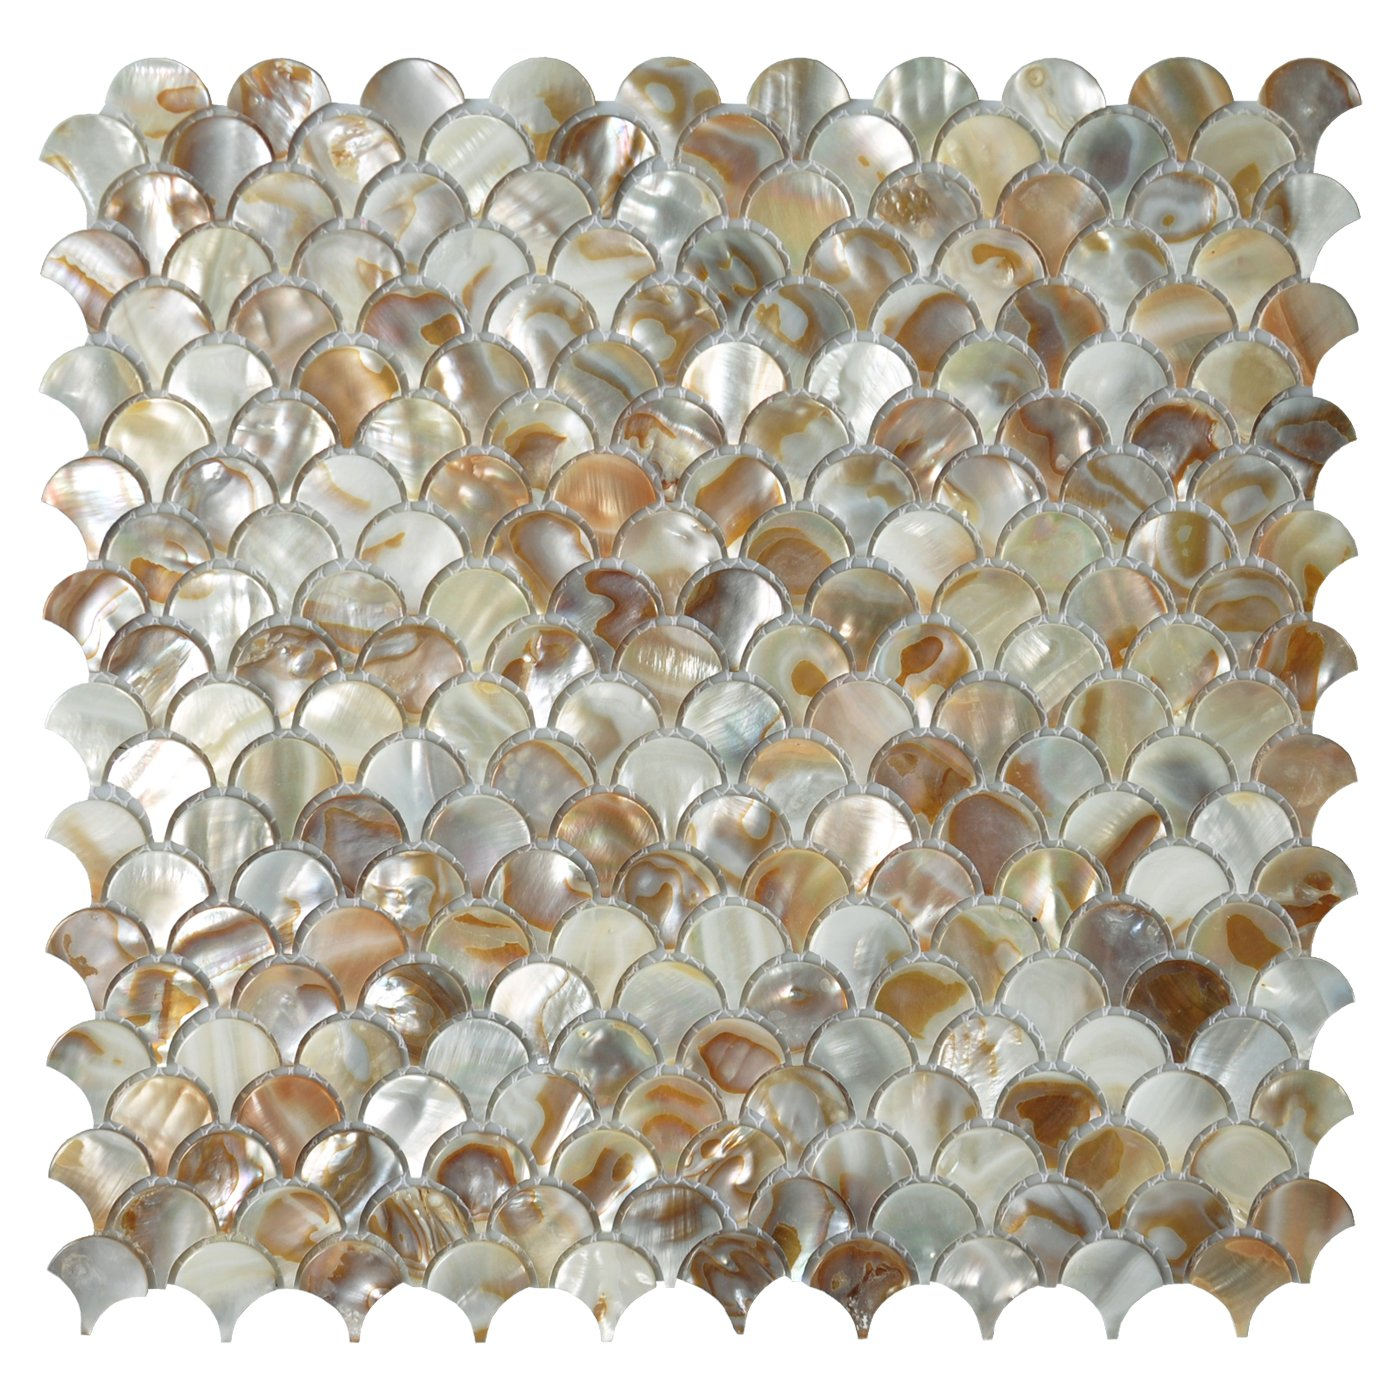 Art3d Mother of Pearl Colorful Bathroom Wall Panels Fan Shaped Fish Scale Mosaic Tile Honed 6 Sq Ft Pack of 6